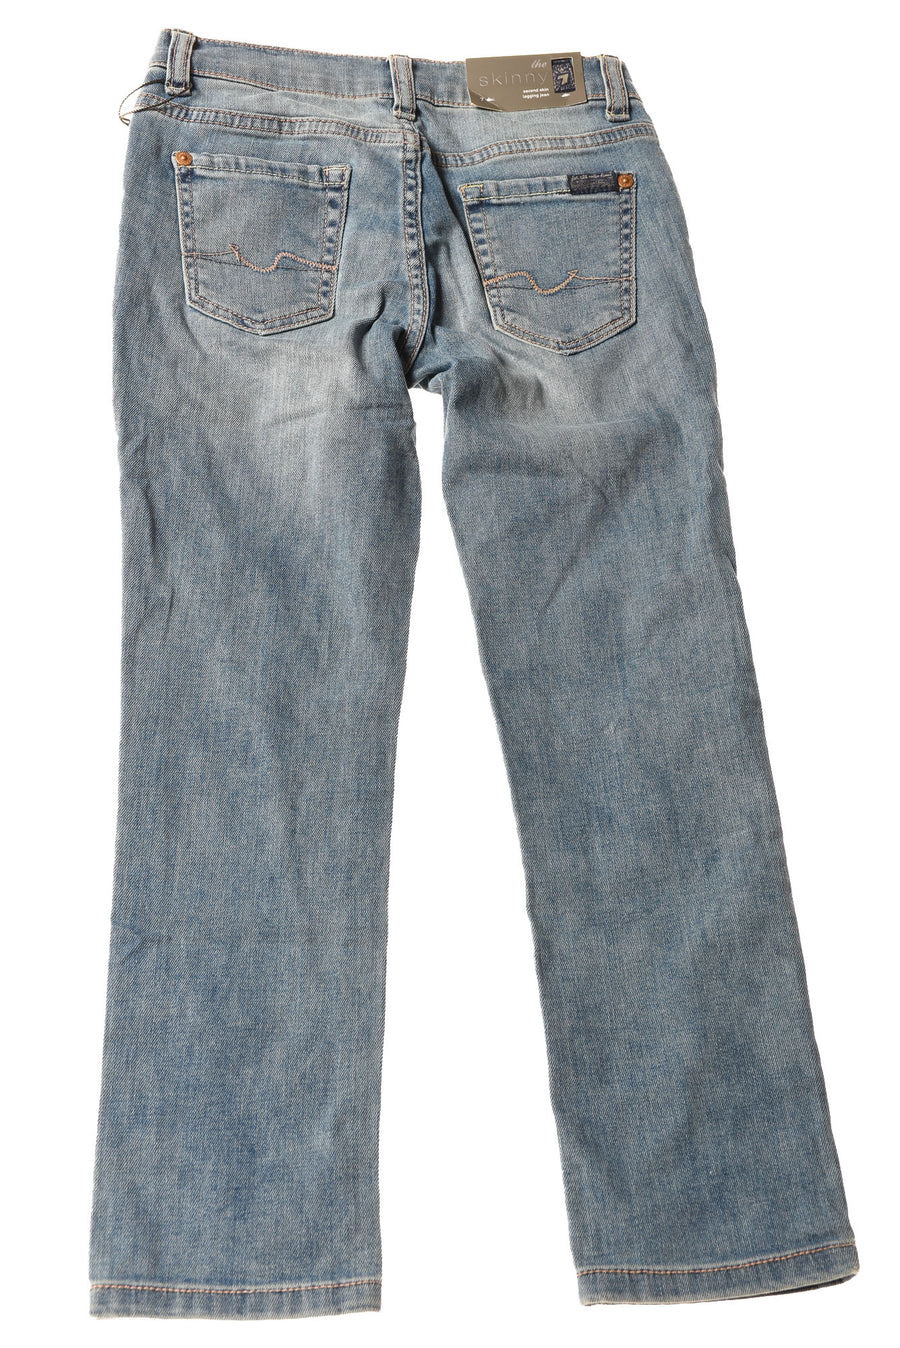 NEW For All Mankind Girl's Jeans 7 Blue